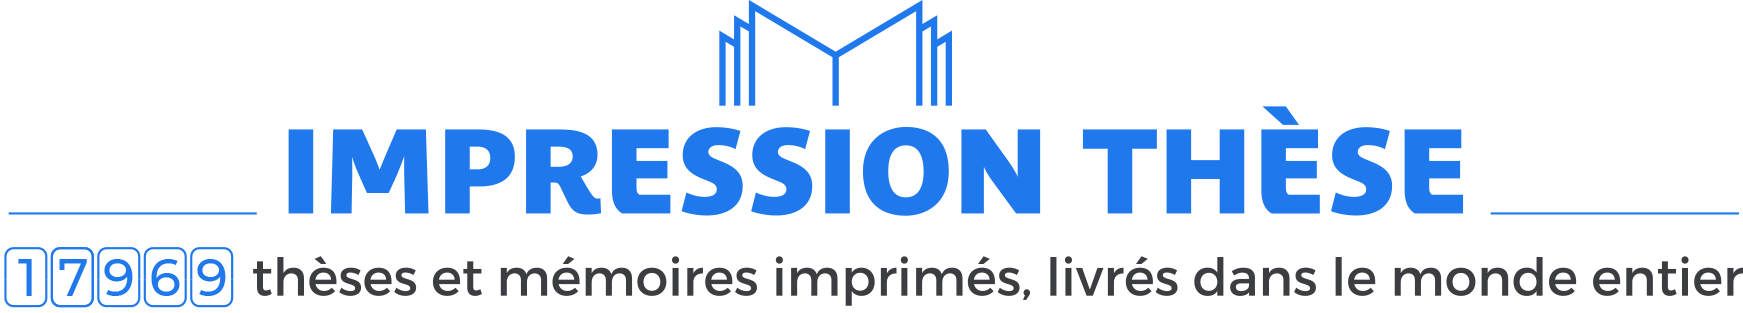 Impression-these.com logo